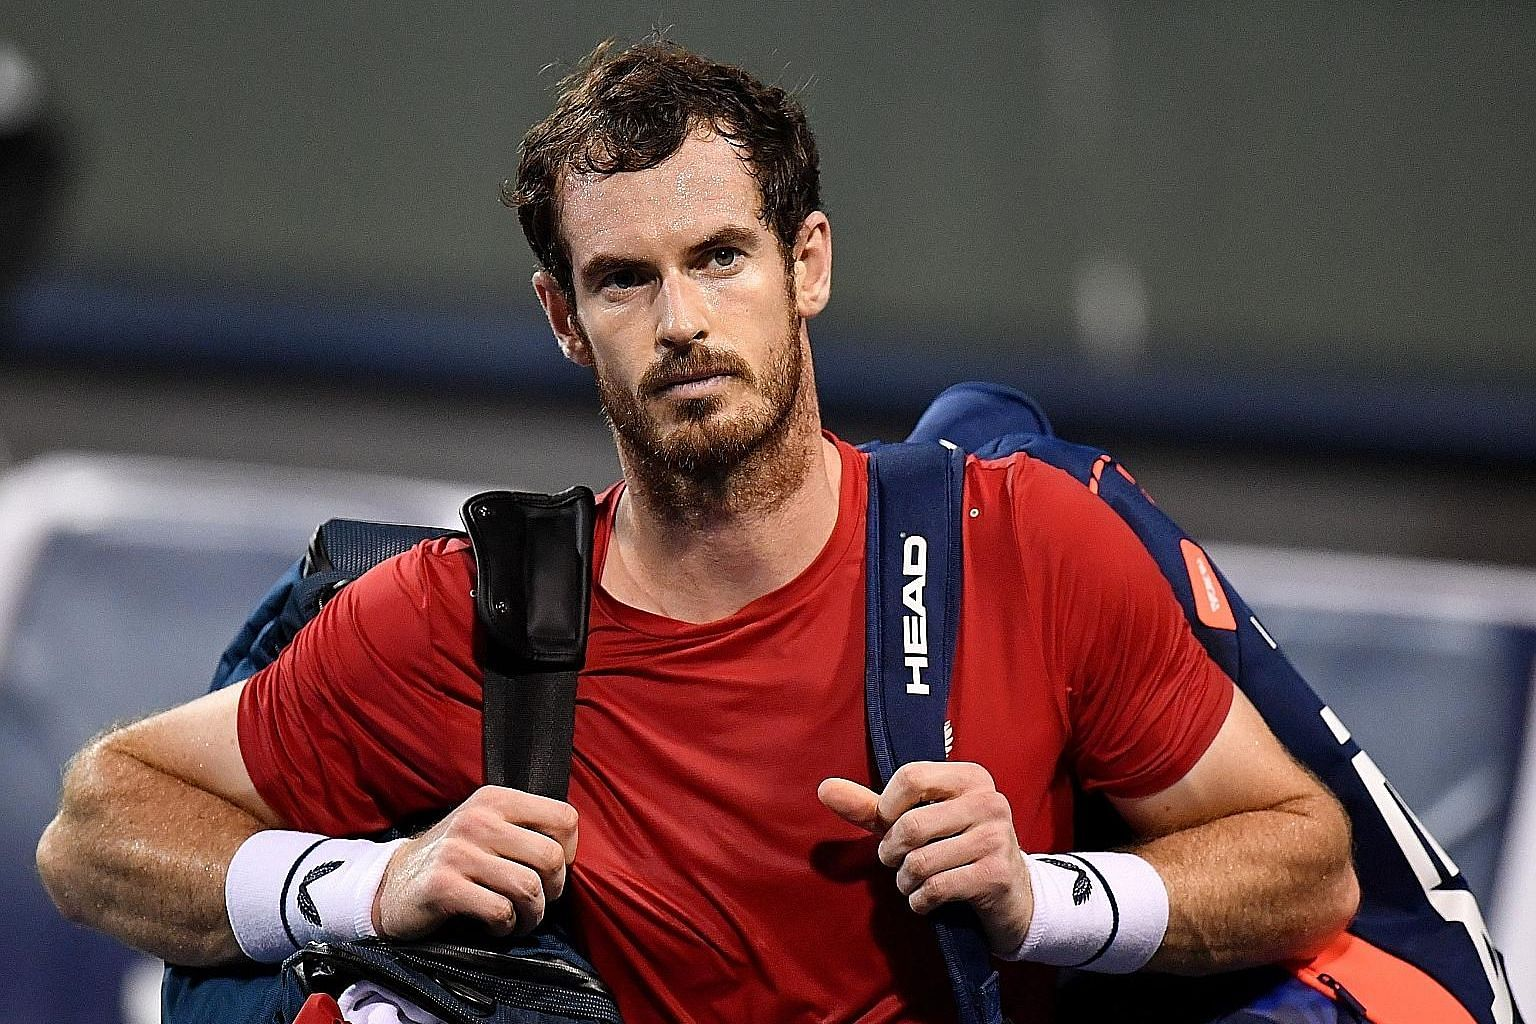 Andy Murray after losing to Fabio Fognini in the last 32 of the Shanghai Masters in October. He injured his pelvis playing for Britain in the Davis Cup last month.